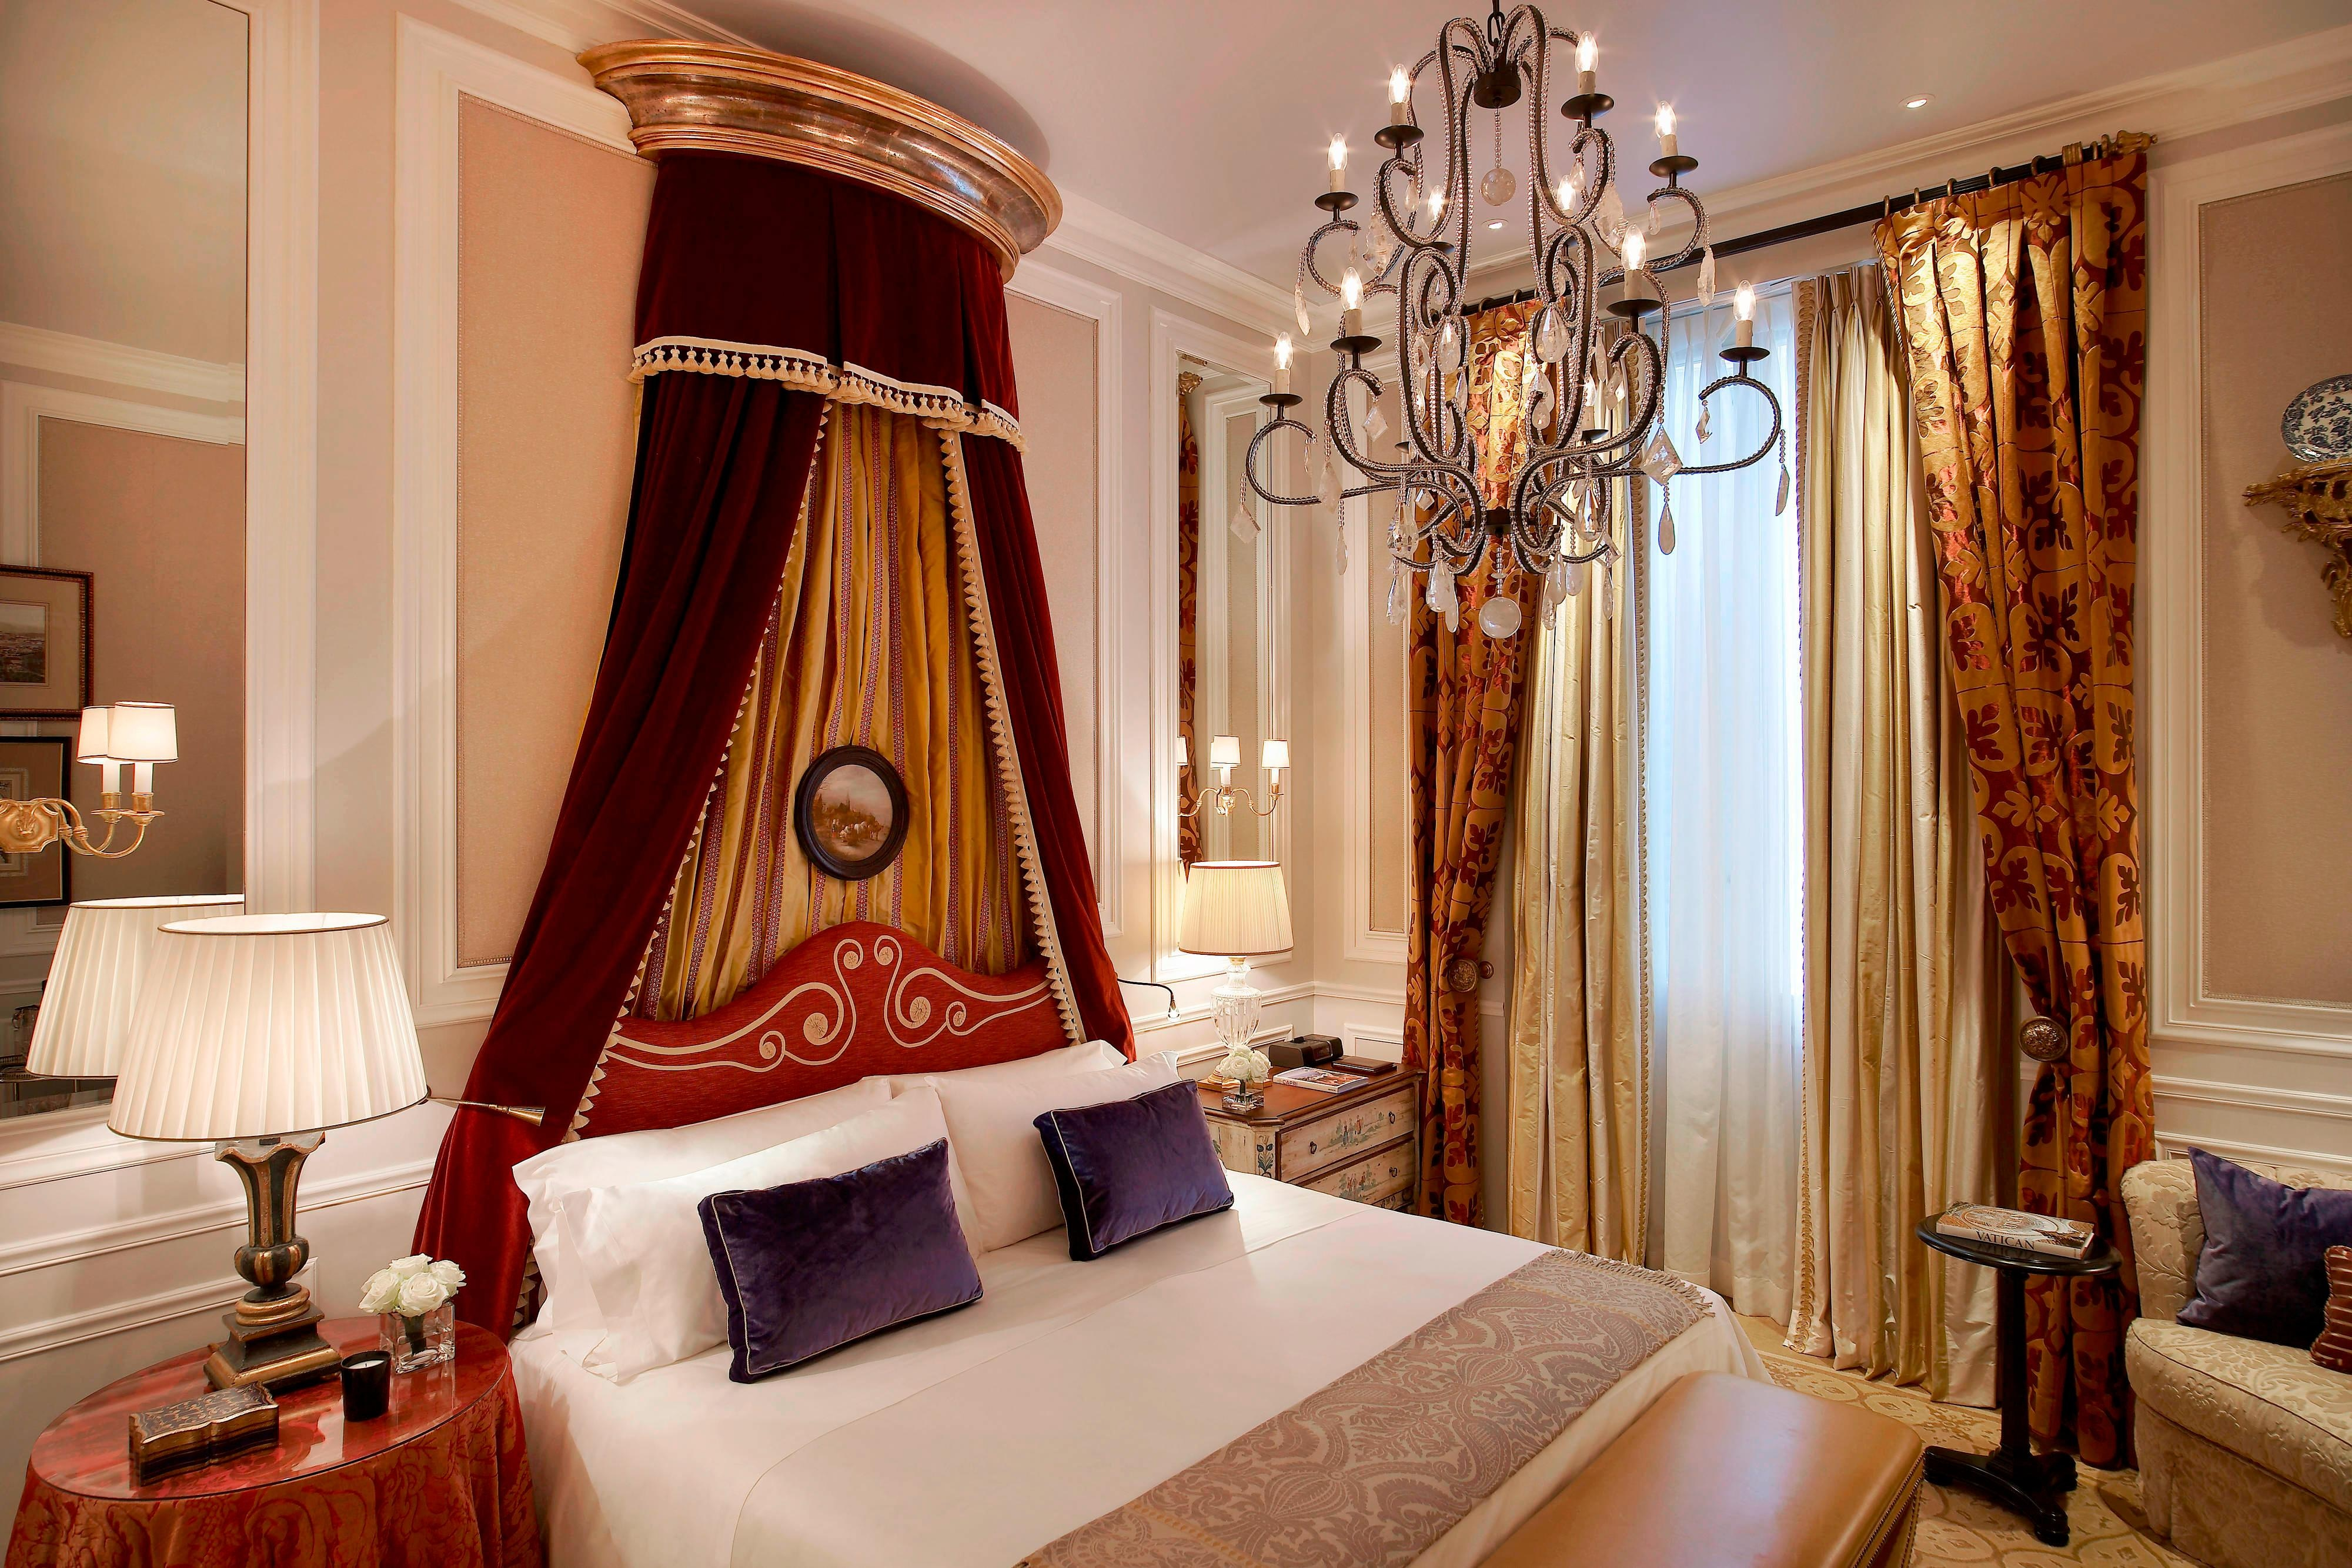 Deluxe Room - Medici style